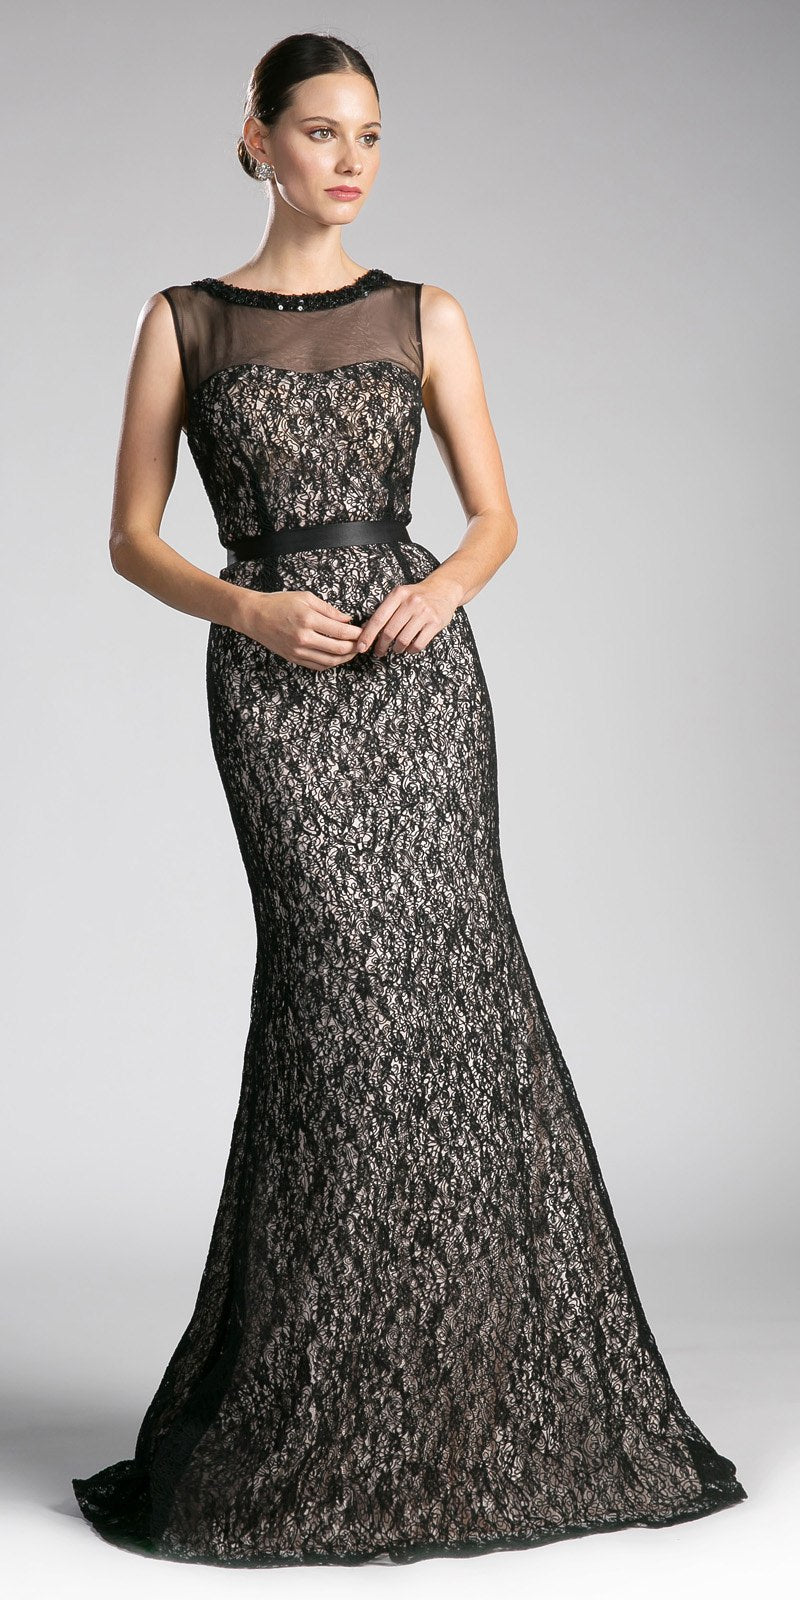 Cinderella Divine 5014-1 Black Lace Illusion Mermaid Evening Gown ...